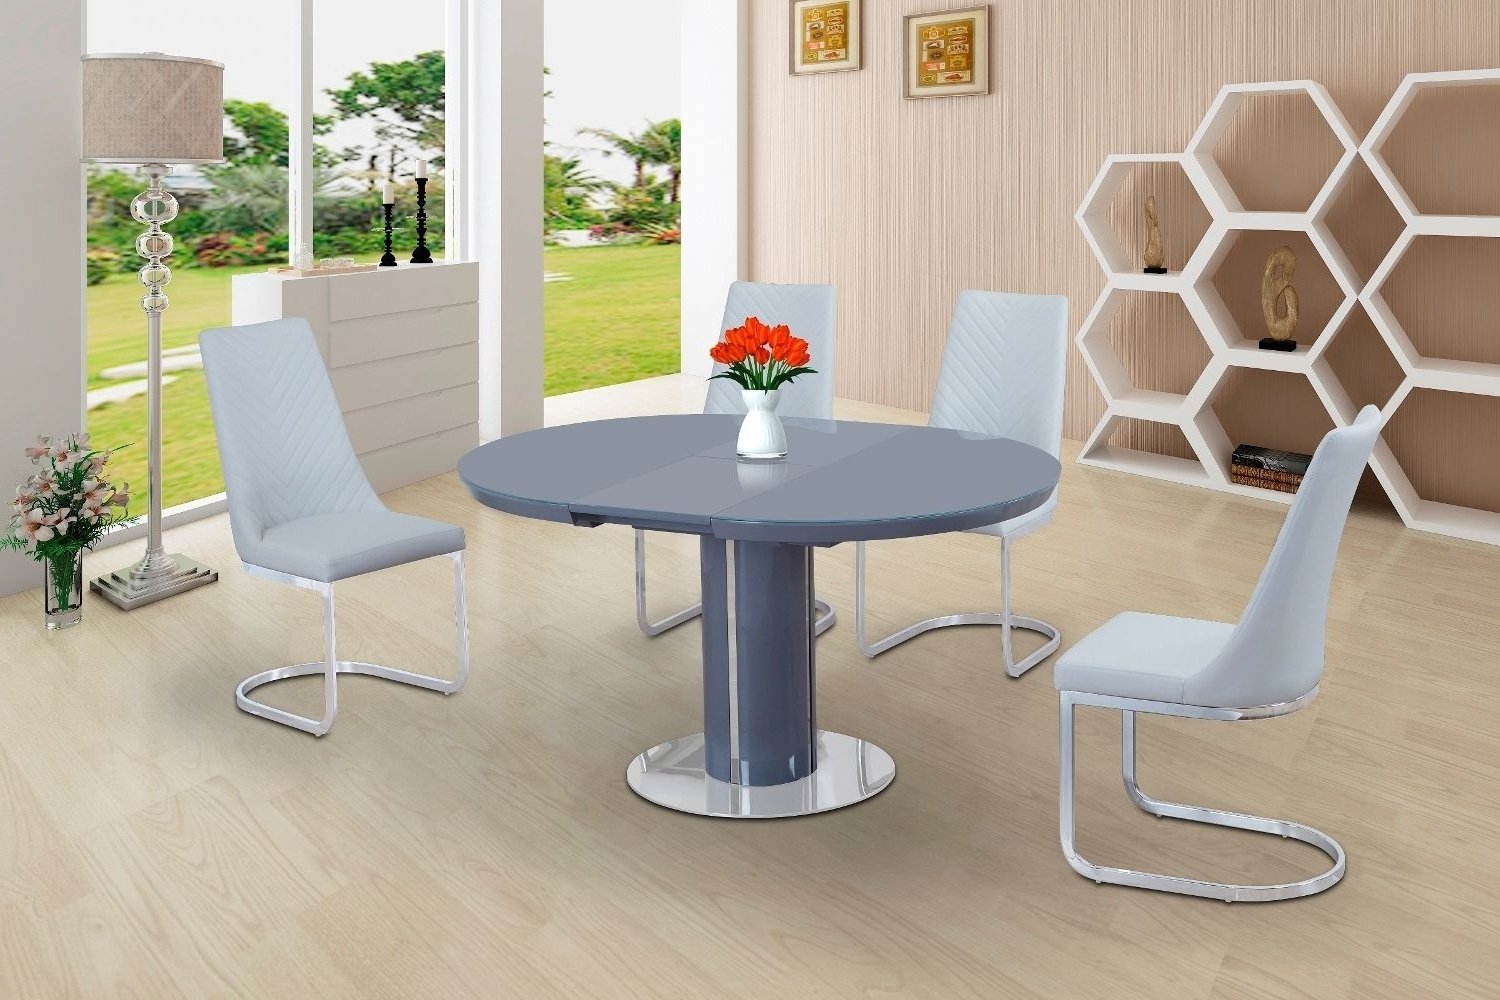 Eclipse Round Oval Gloss & Glass Extending 110 To 145 Cm Dining pertaining to Latest Glass Folding Dining Tables